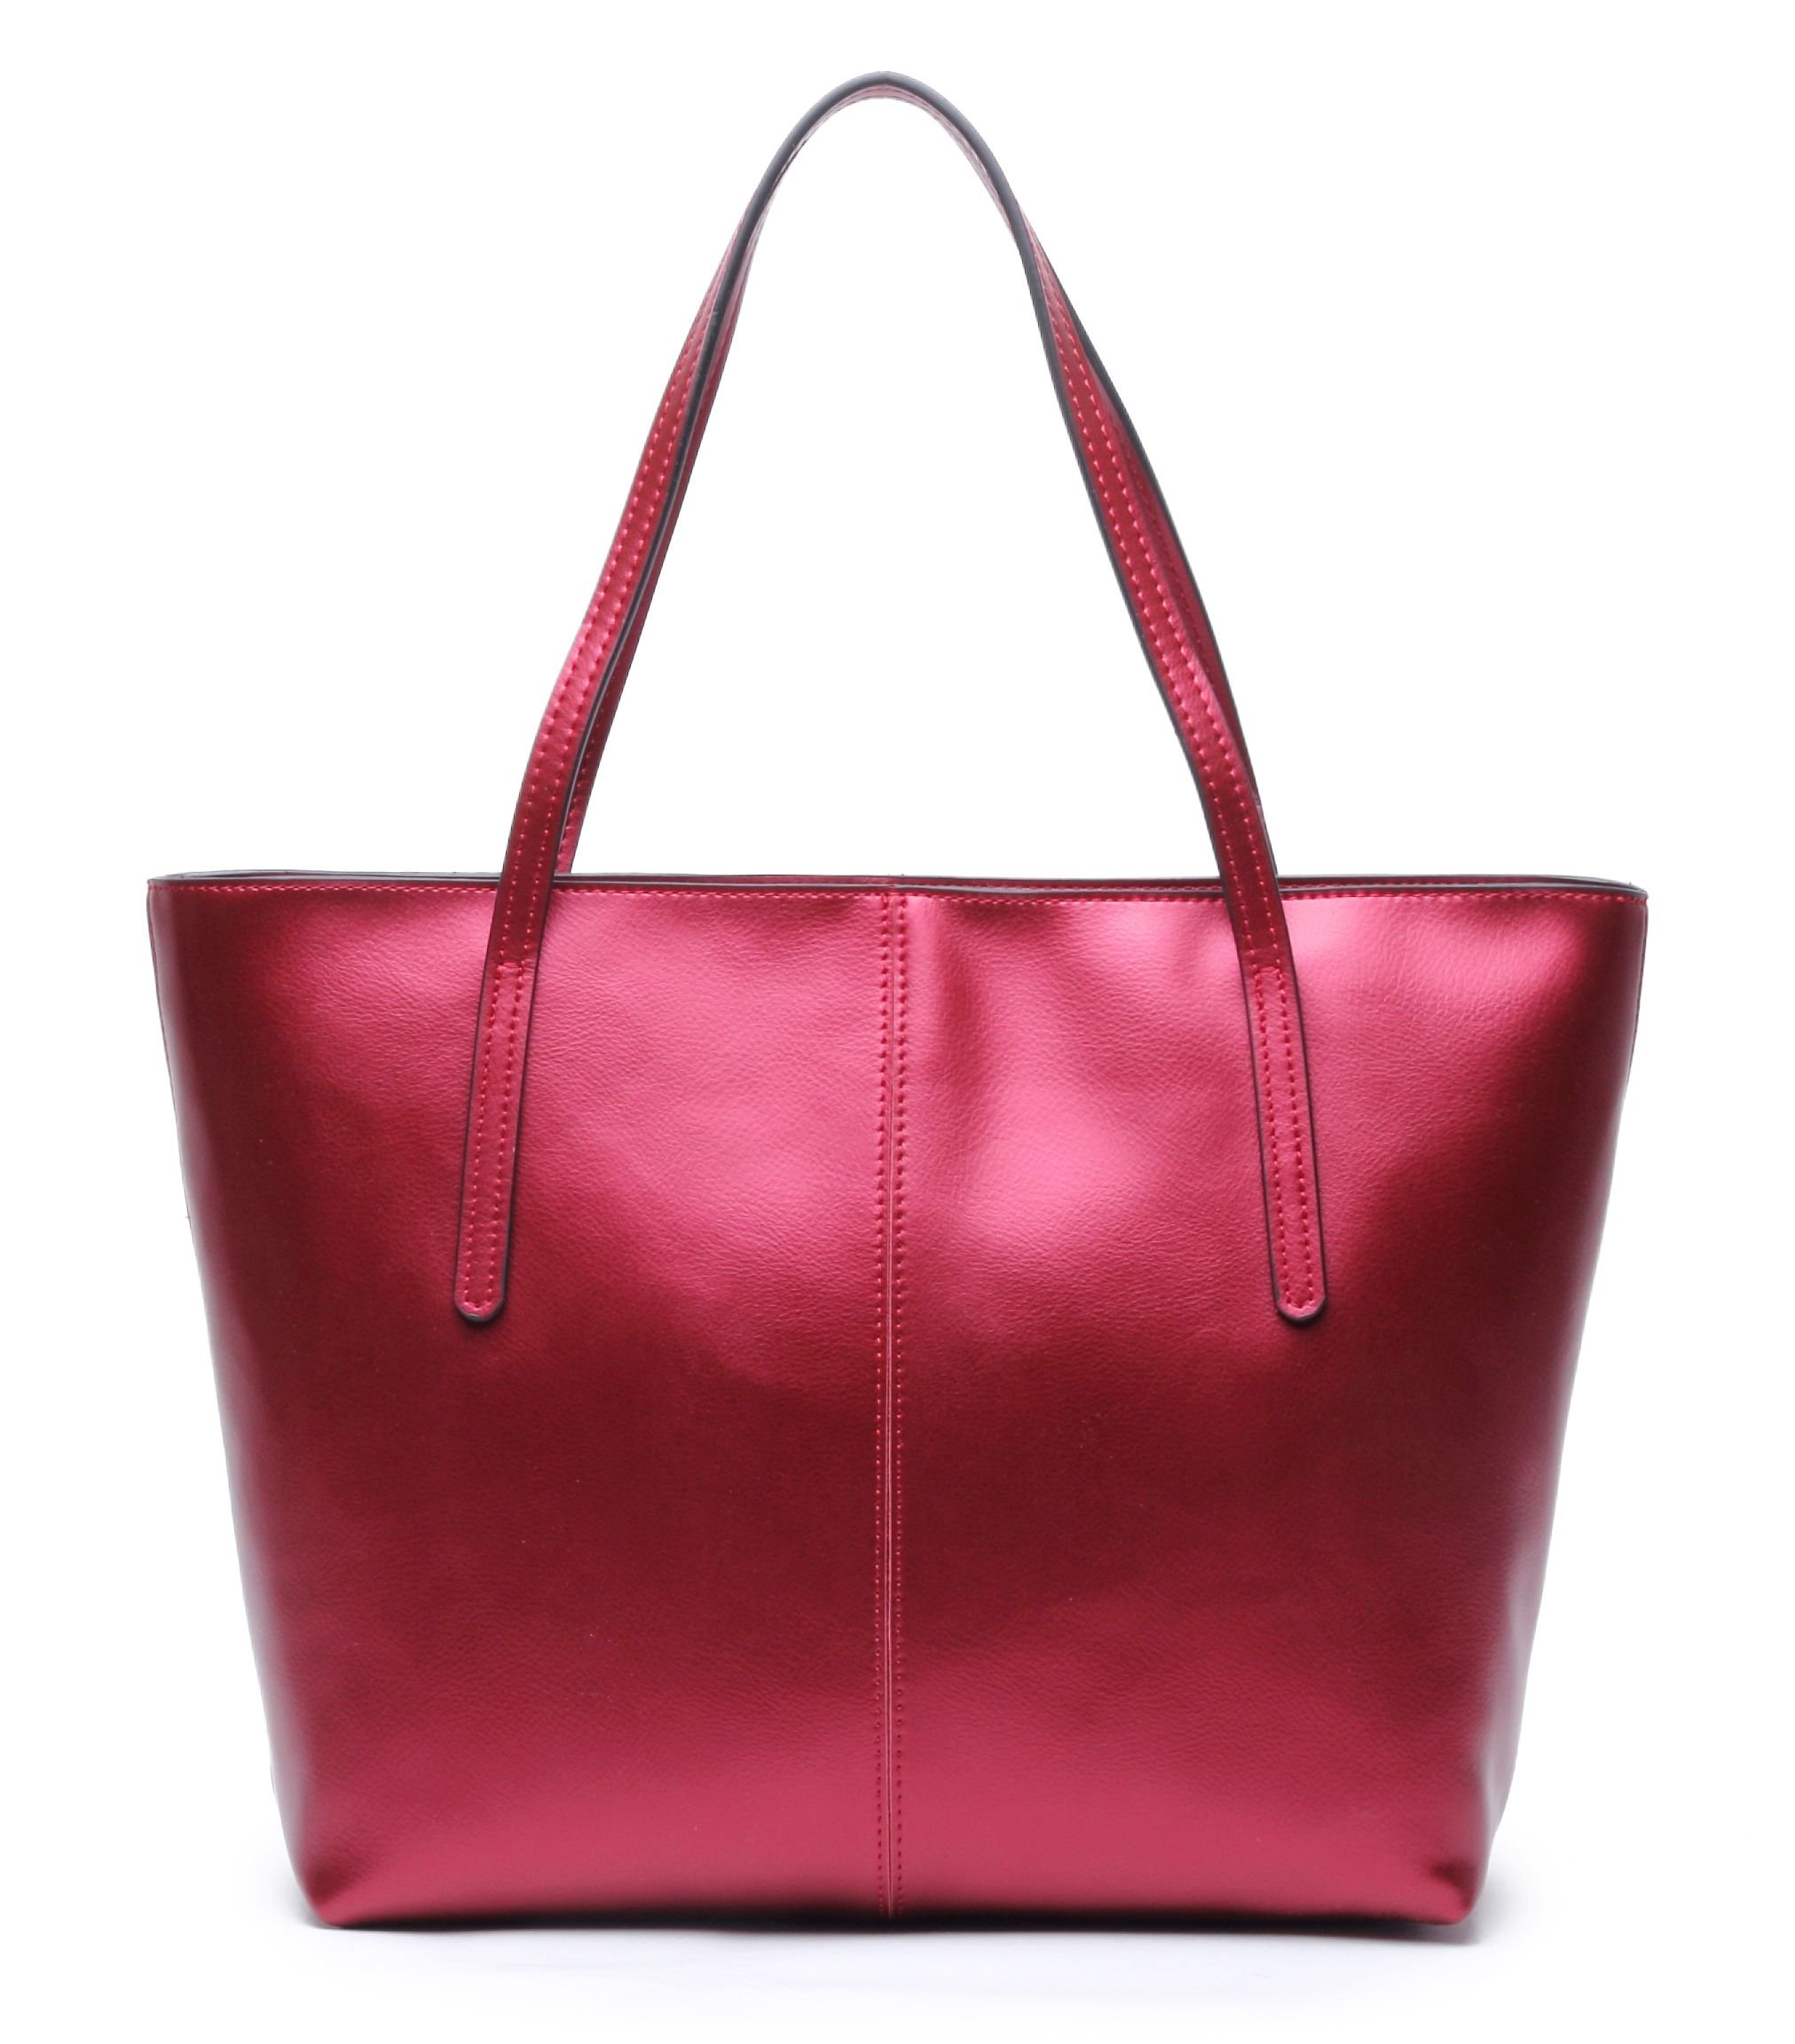 CHERRY CHICK Women's Durable Soft Genuine Leather Tote Bag-Ladies' Stylish Shoulder Bag Big Purse (Shiny Watermelon) by CHERRY CHICK